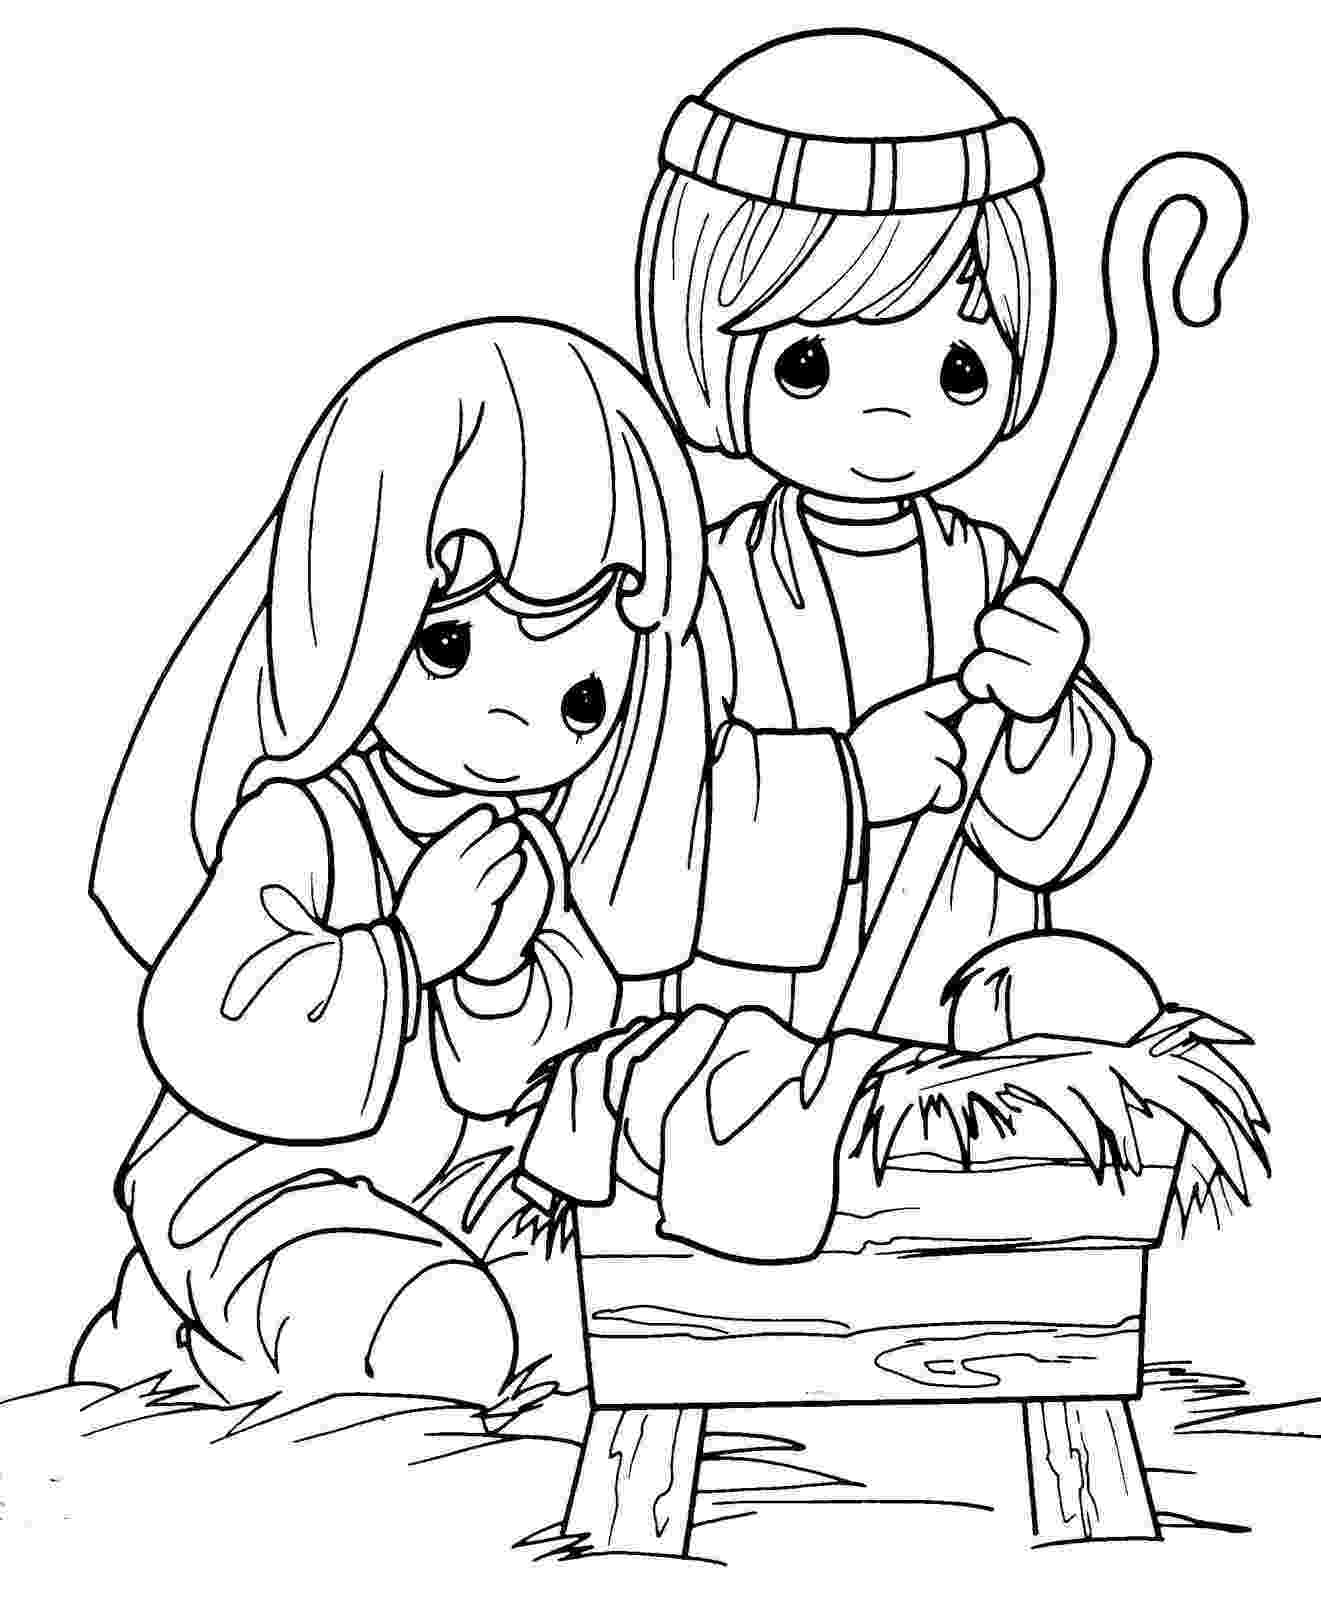 baby jesus coloring sheet baby jesus in a manger in nativity coloring page color luna sheet baby jesus coloring